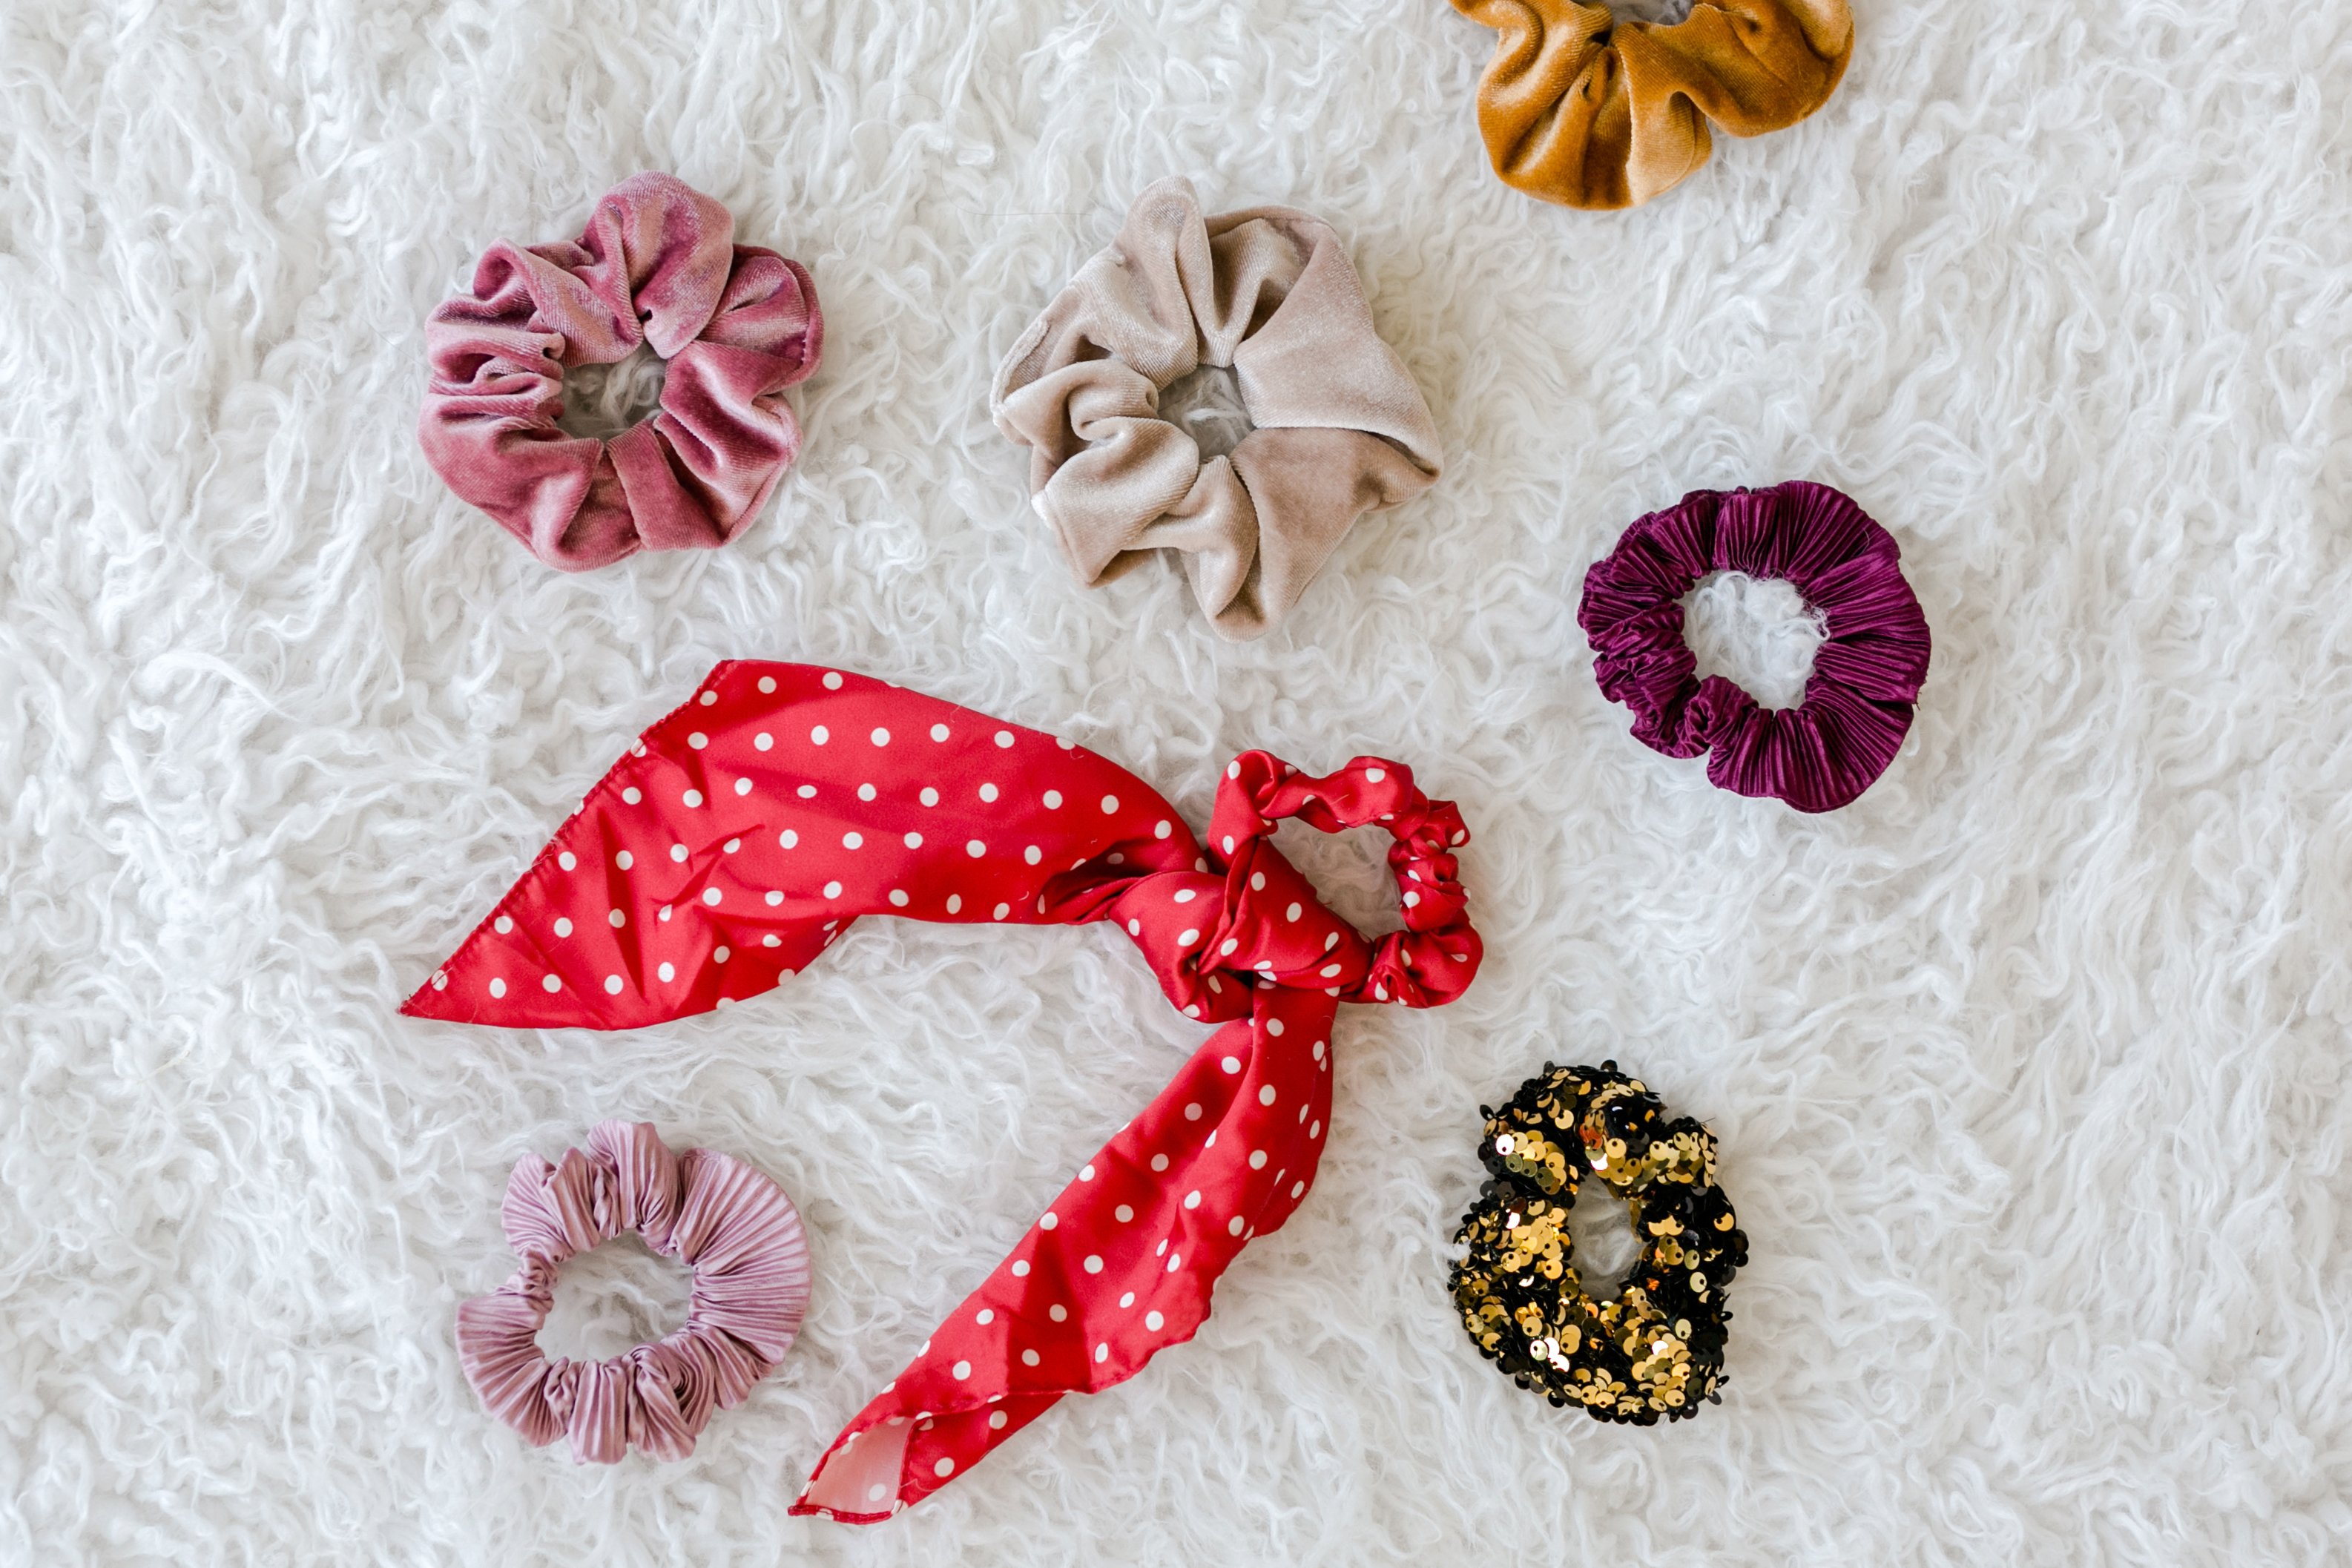 Punctual Colorful Ice Cream Cake Flower Hair Clips Red Hairband Happy New Year Hairpin Hand Made Rim Hair Accessories Hair Bows Back To Search Resultsmother & Kids